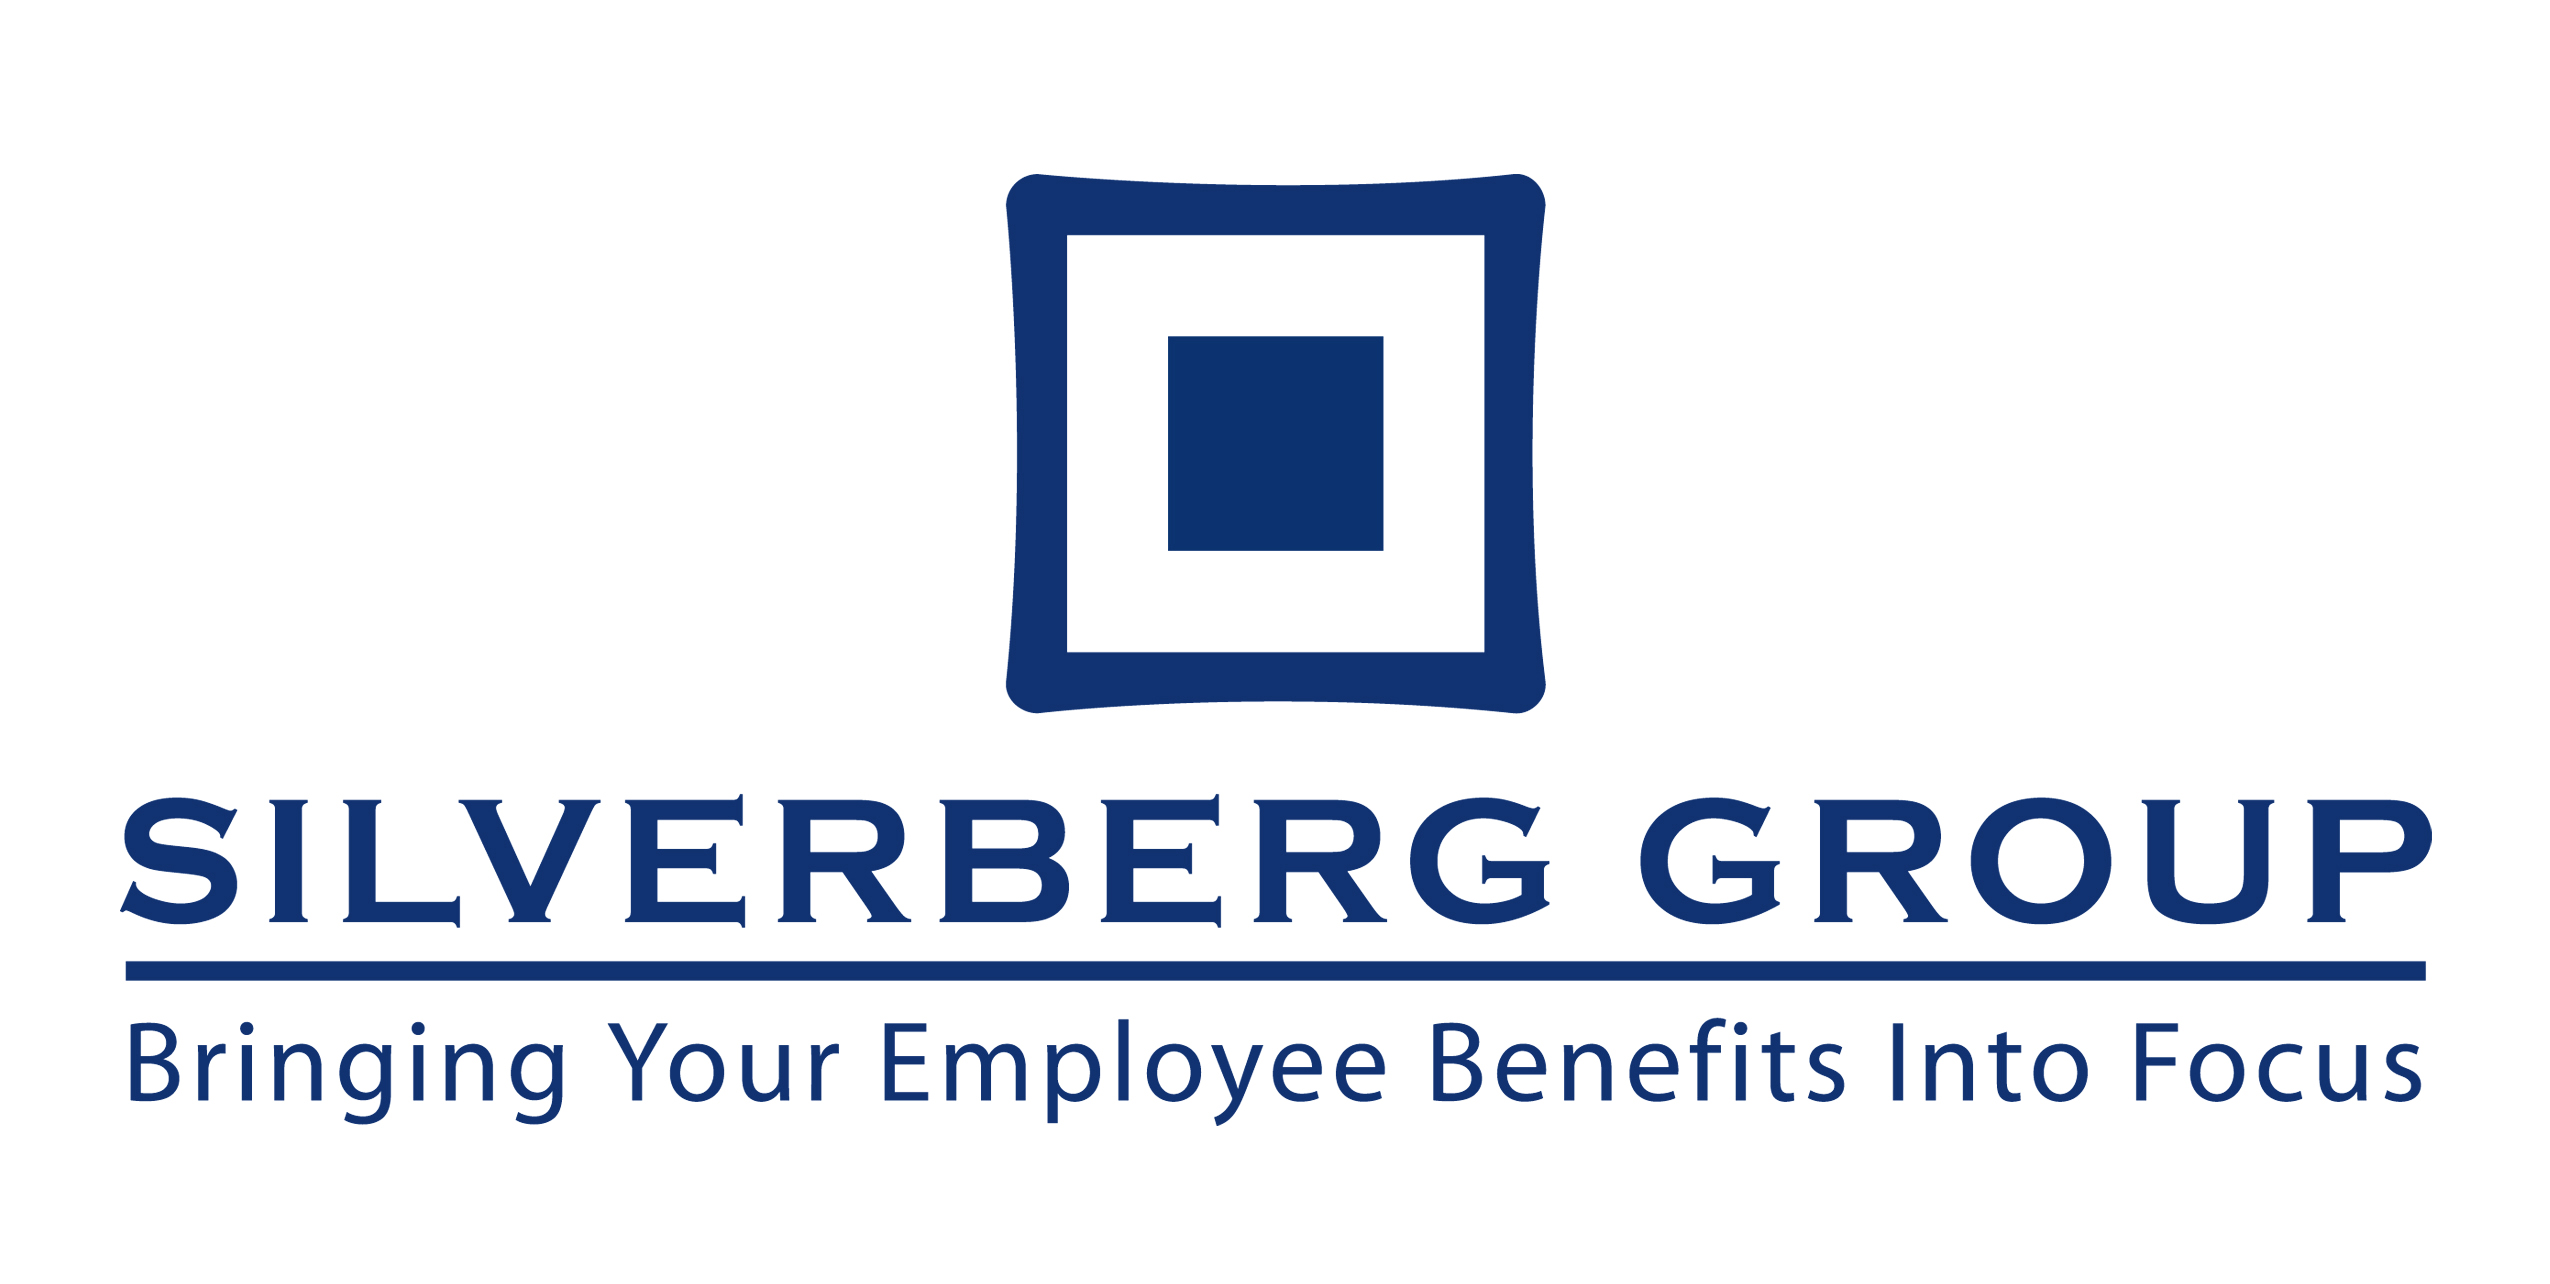 Silverberg Group